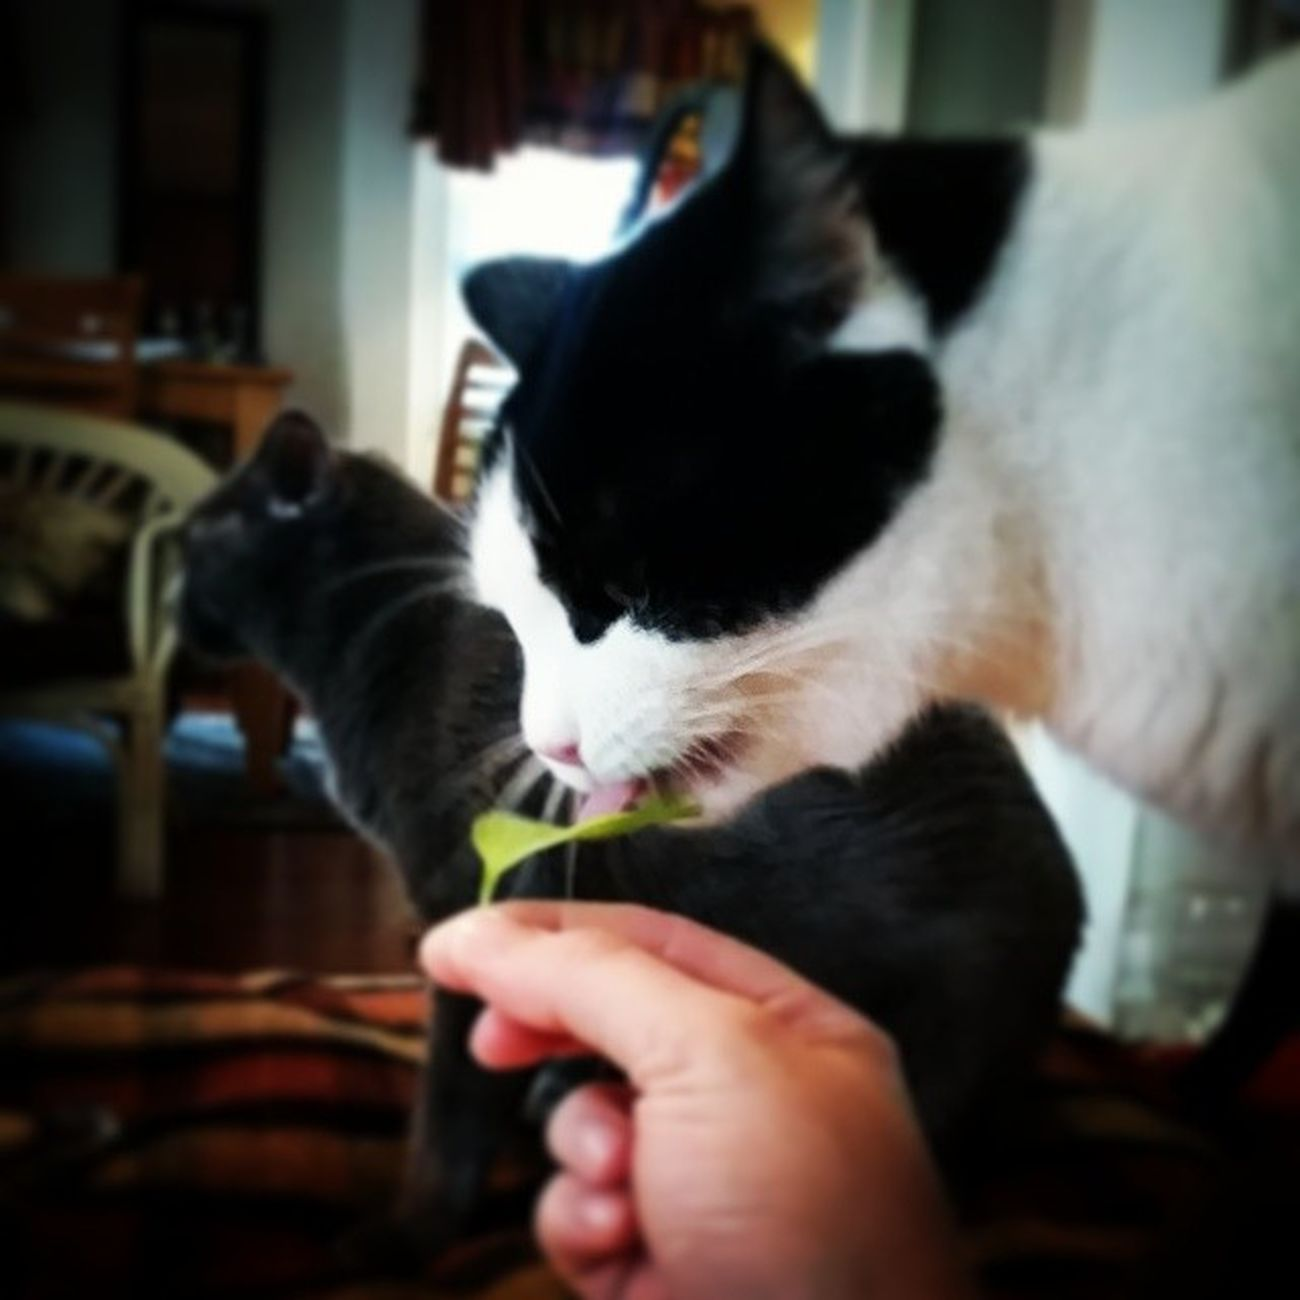 Richardthecat muching on some fresh basil from our garden!